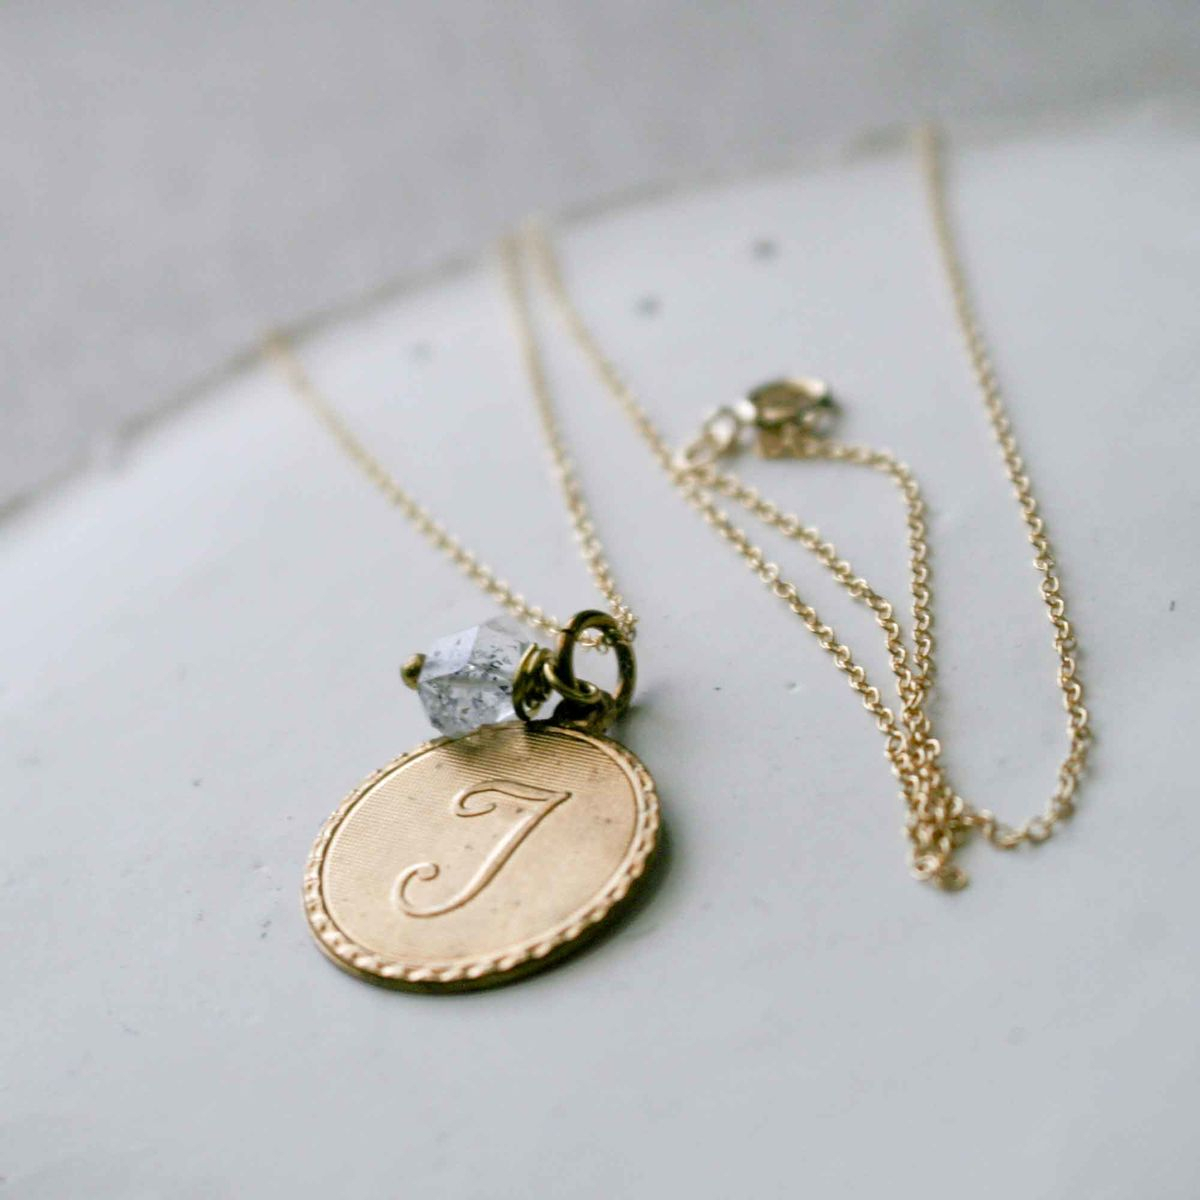 Uppercase Cursive Initial Monogram Letter Round Disc Charm Necklace Pertaining To Most Popular Letter J Alphabet Locket Element Necklaces (Gallery 20 of 25)